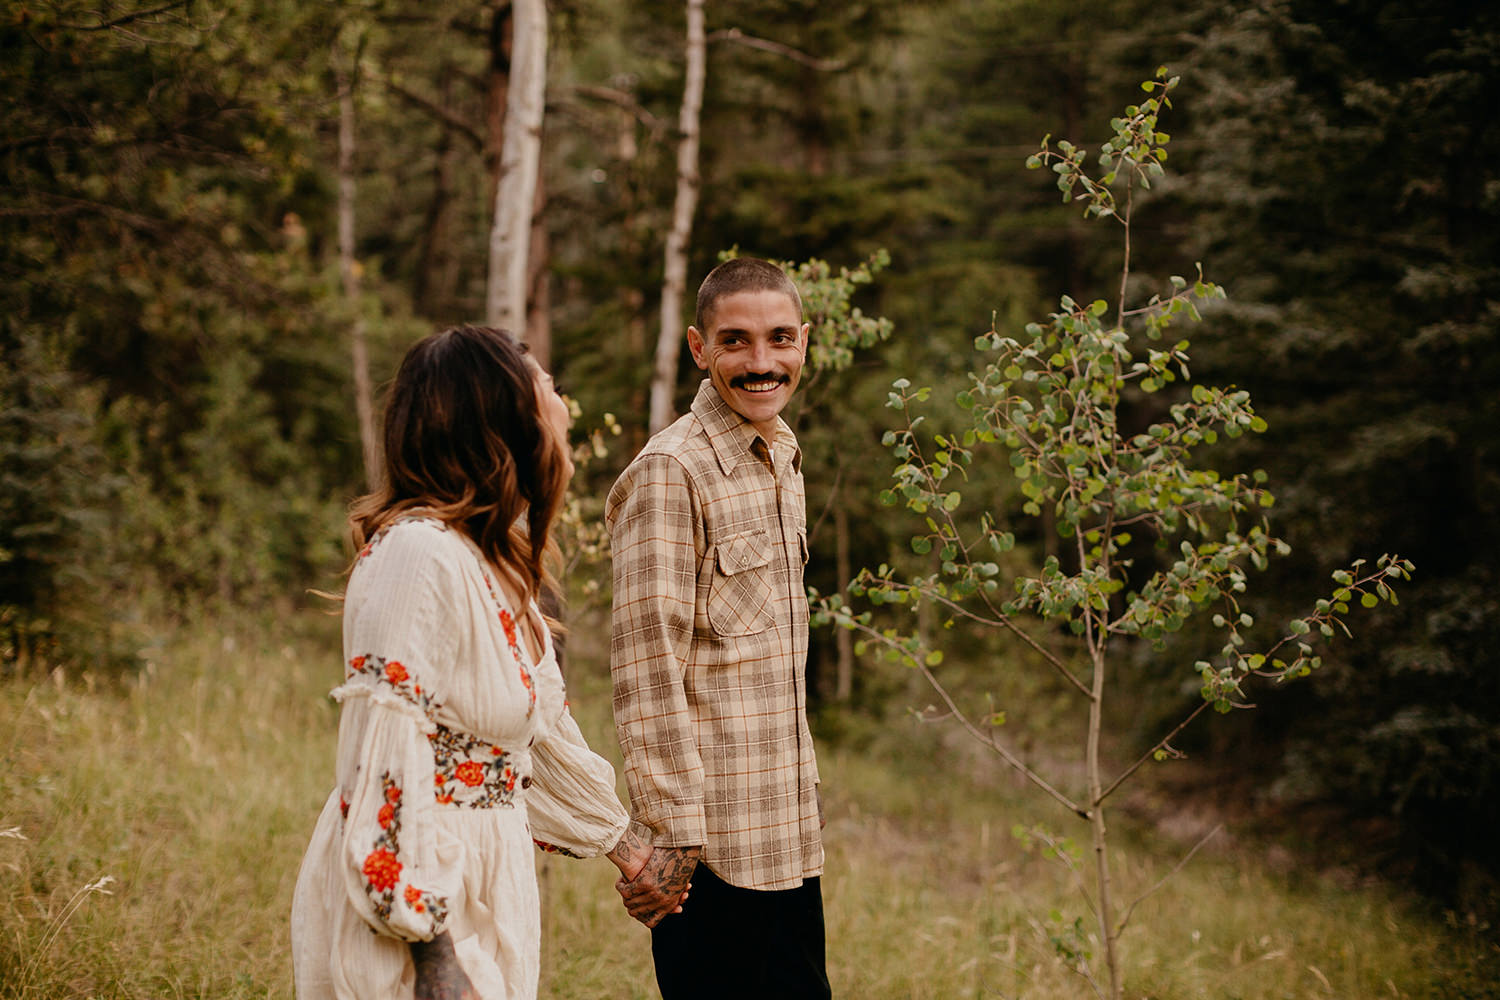 Bailey Colorado Denver Wedding Engagement Photographer Liz Osban Cheyenne Wyoming Mountain Elopement Boho bohemian vintage film tattoo non traditional tattooed rock and roll 19.jpg